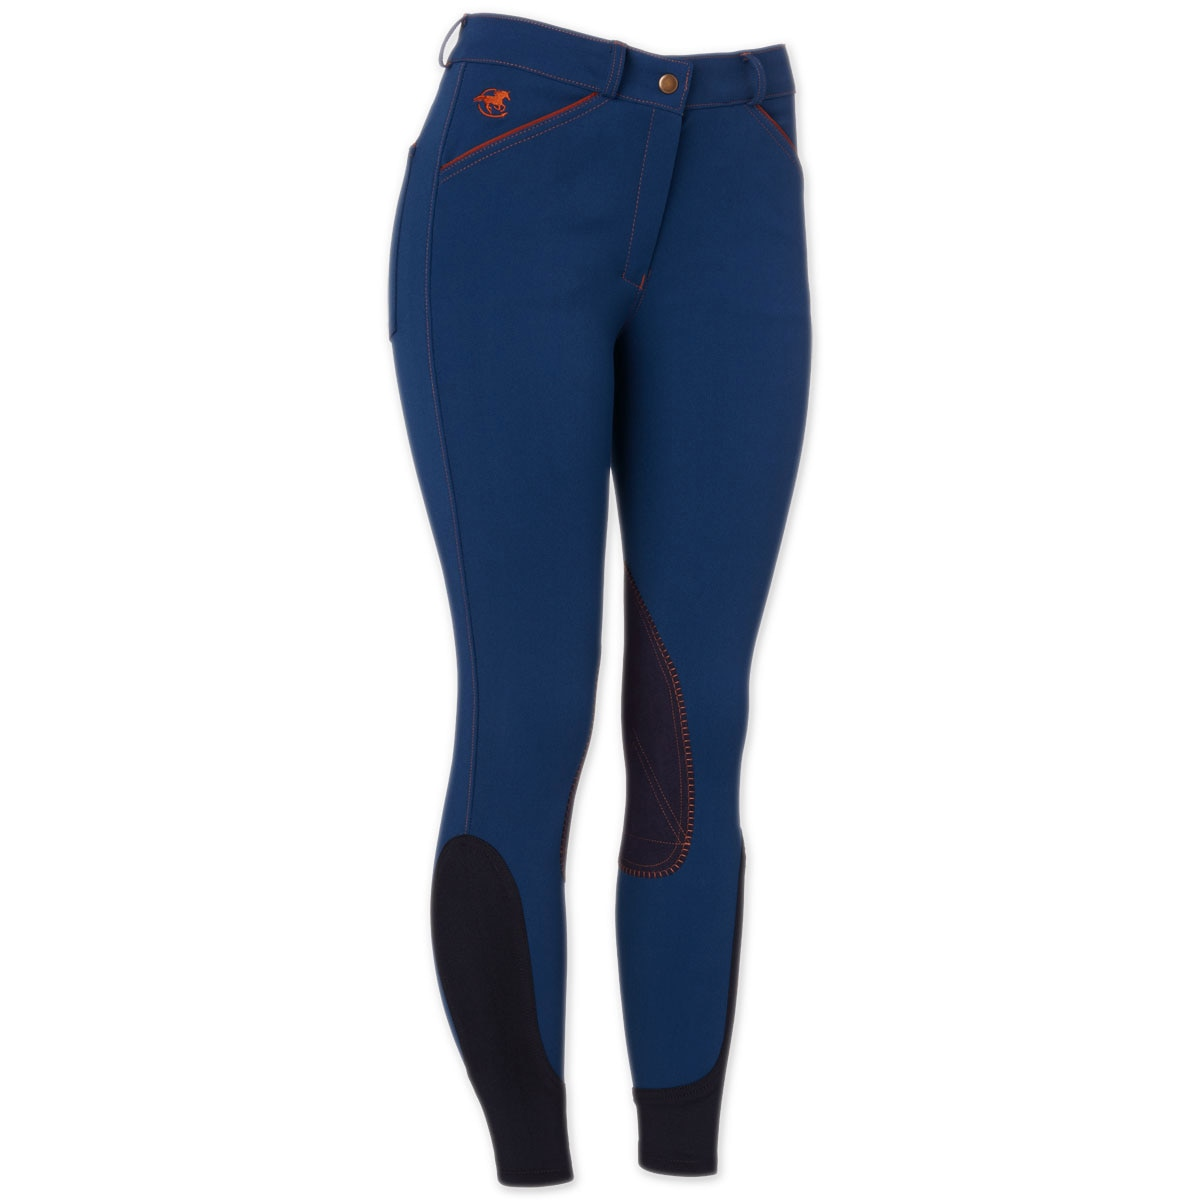 Piper Breeches by SmartPak - Mid Rise Knee Patch- Sale!